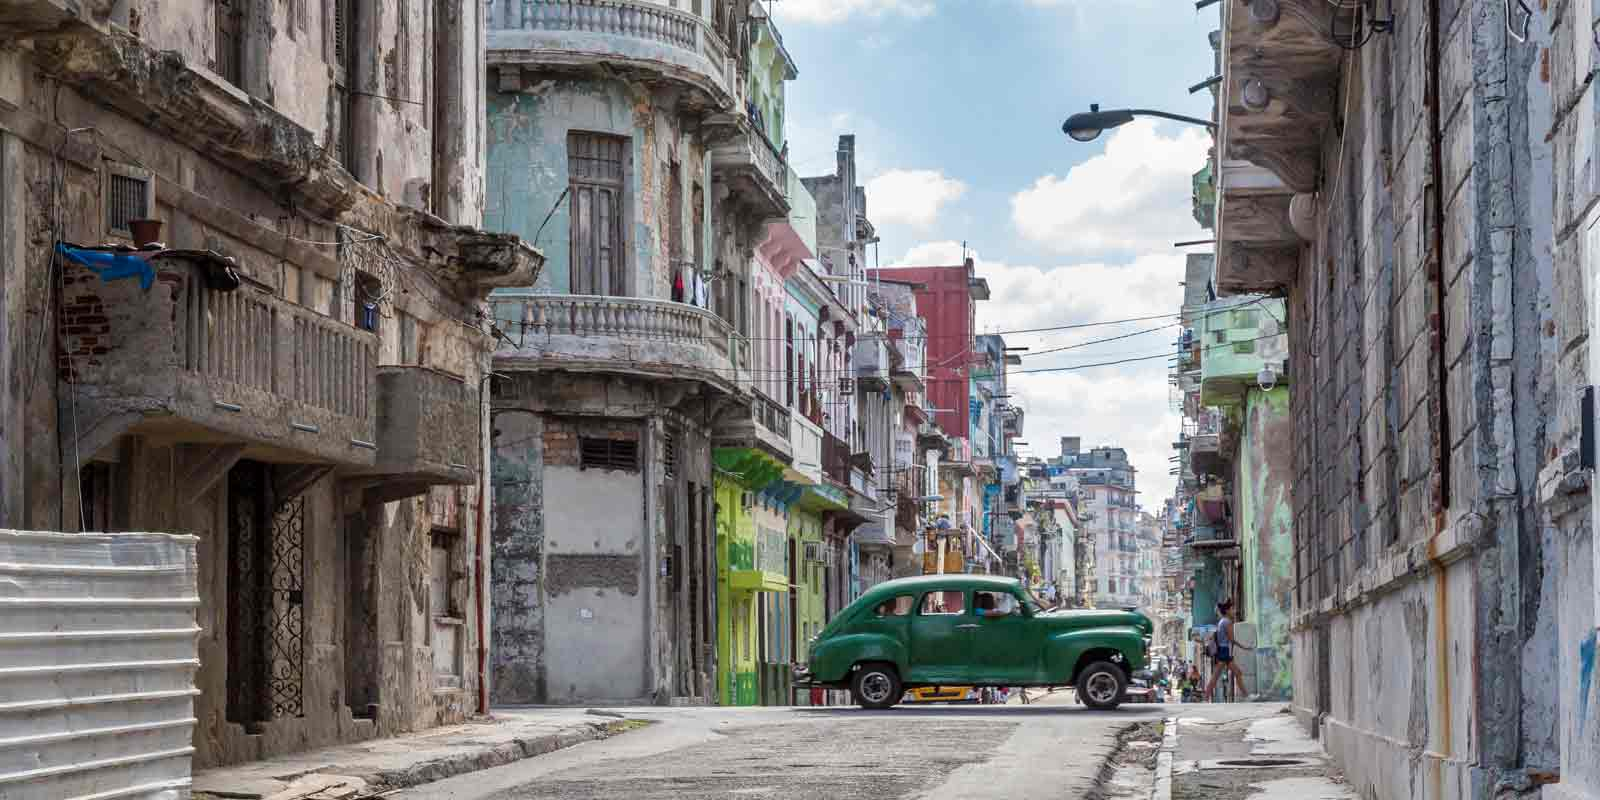 Some of Cuba is in disrepair, such as this neighborhood, a stark contrast to the typical image of colorful buildings and shiny classic cars.